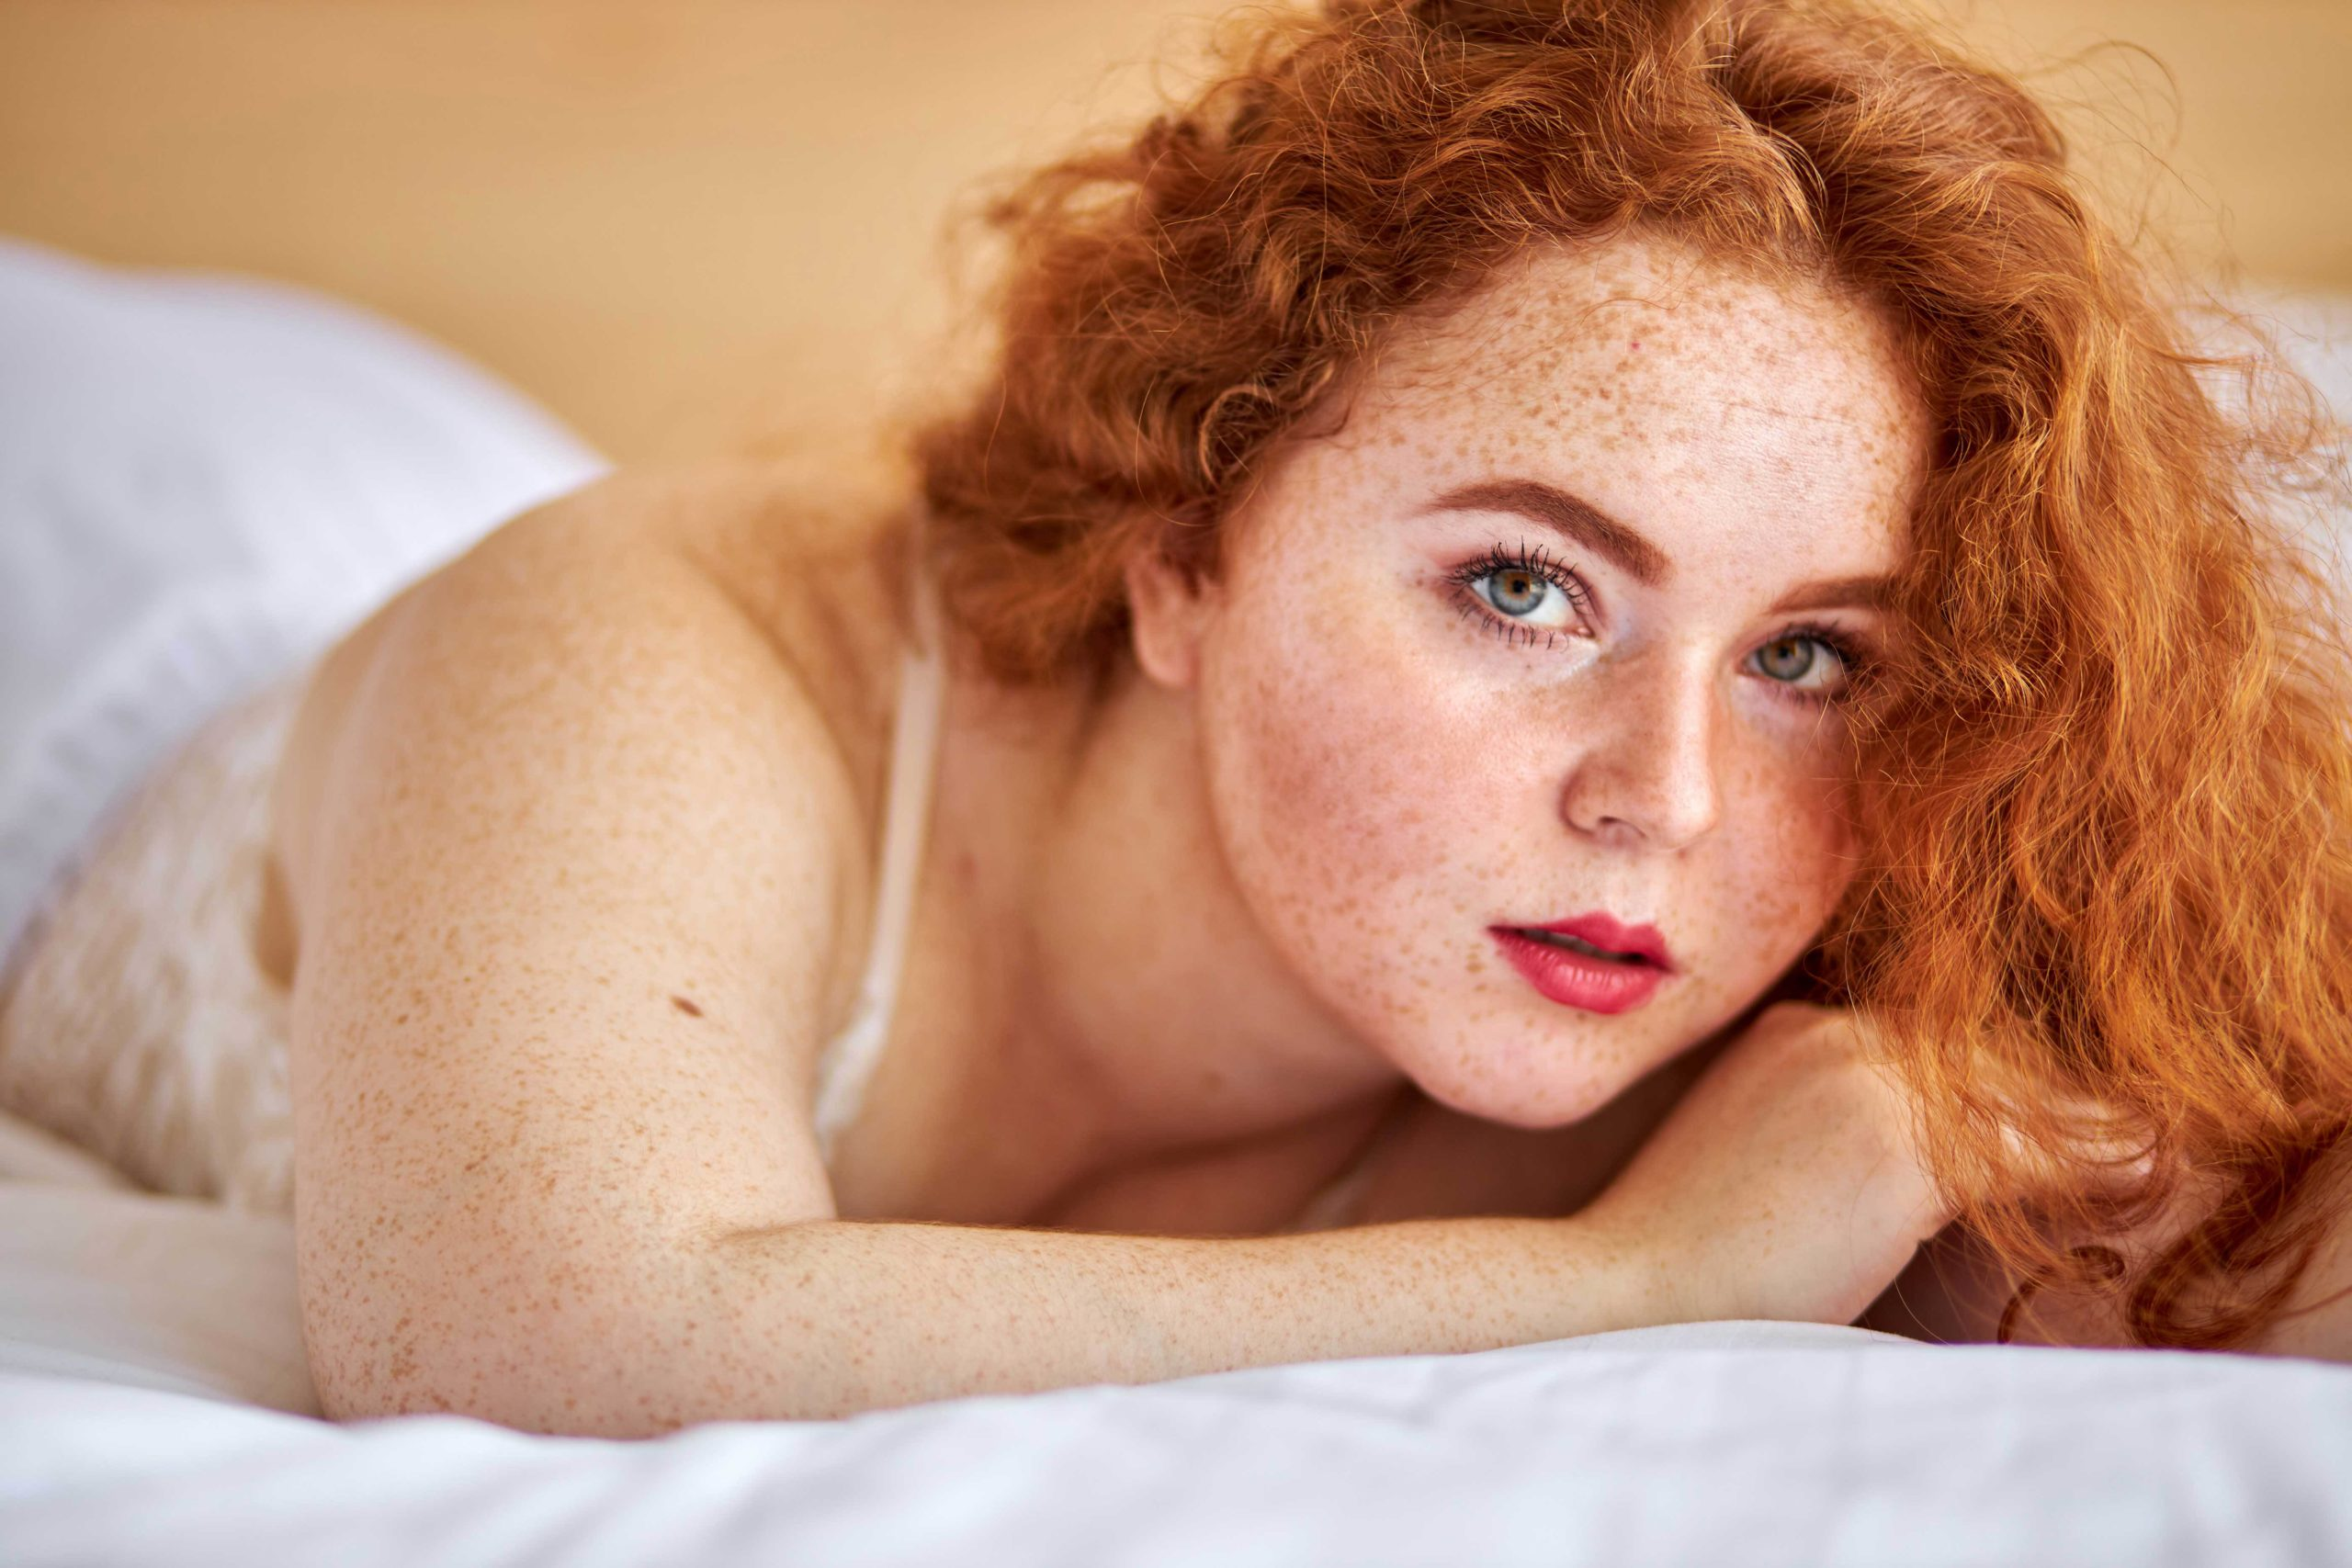 BBW overweight pretty caucasian woman showing off fat figure wearing sexy lingerie, lying on bed relaxing, sexy redhead female at home